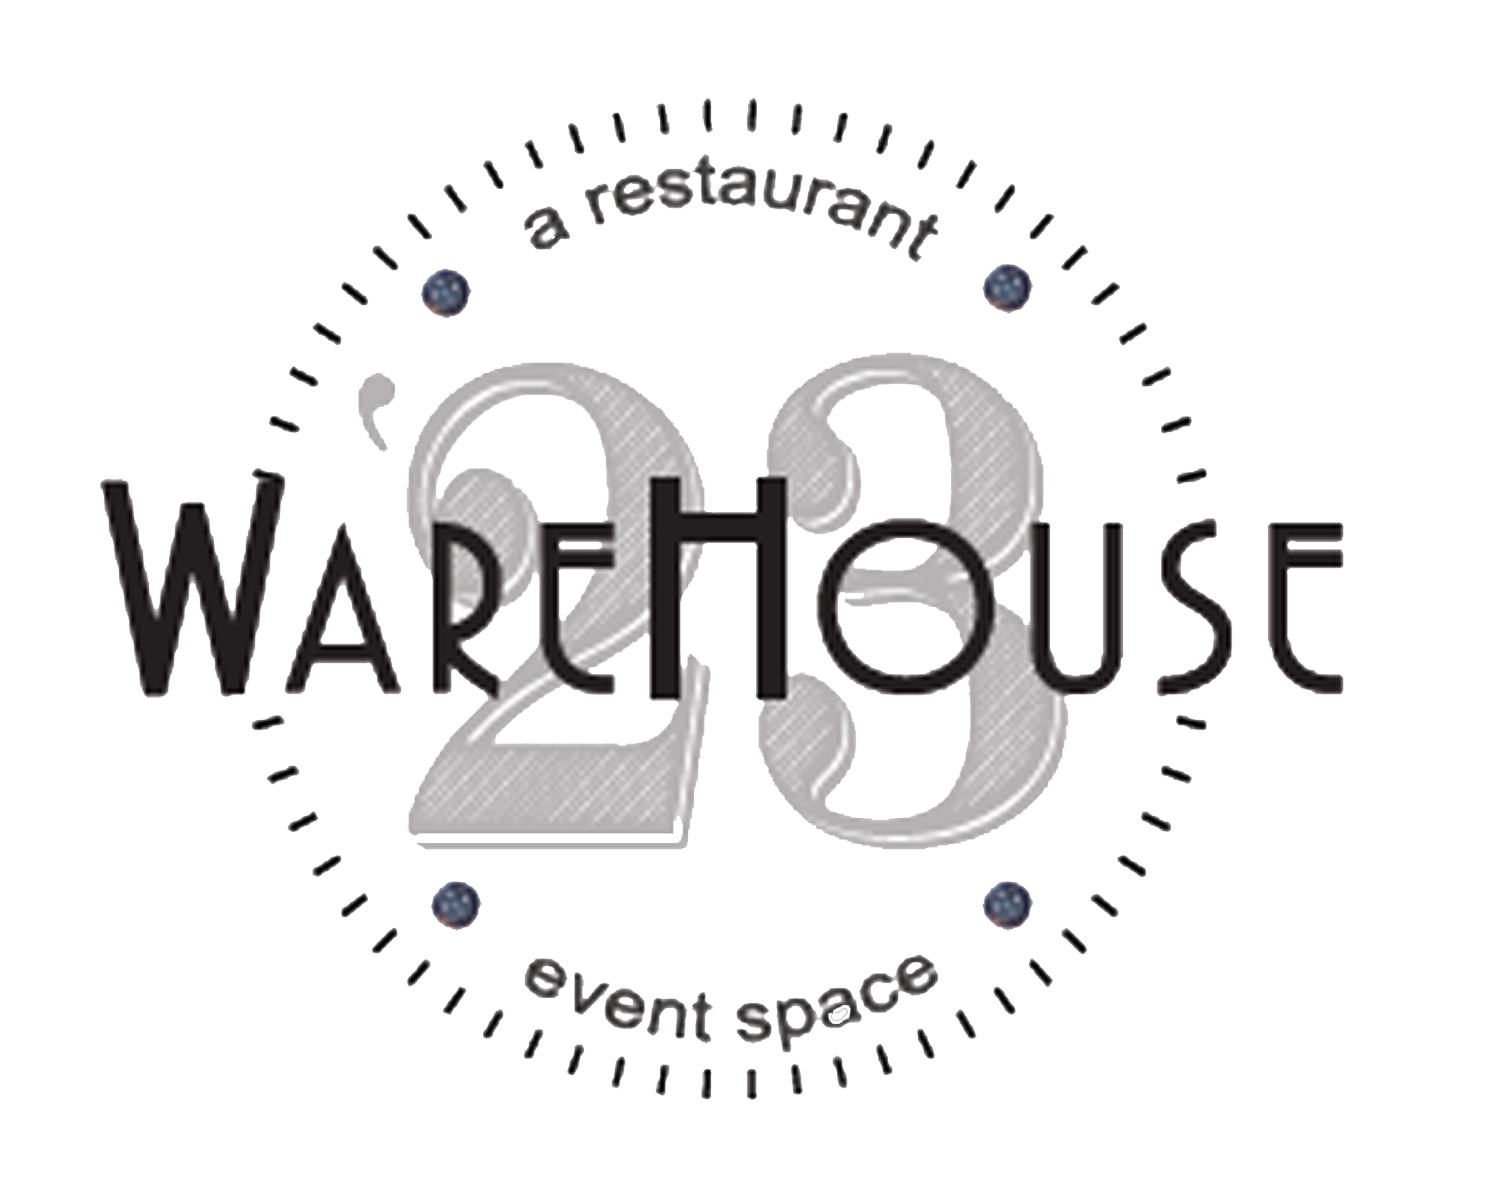 Warehouse 23 logo